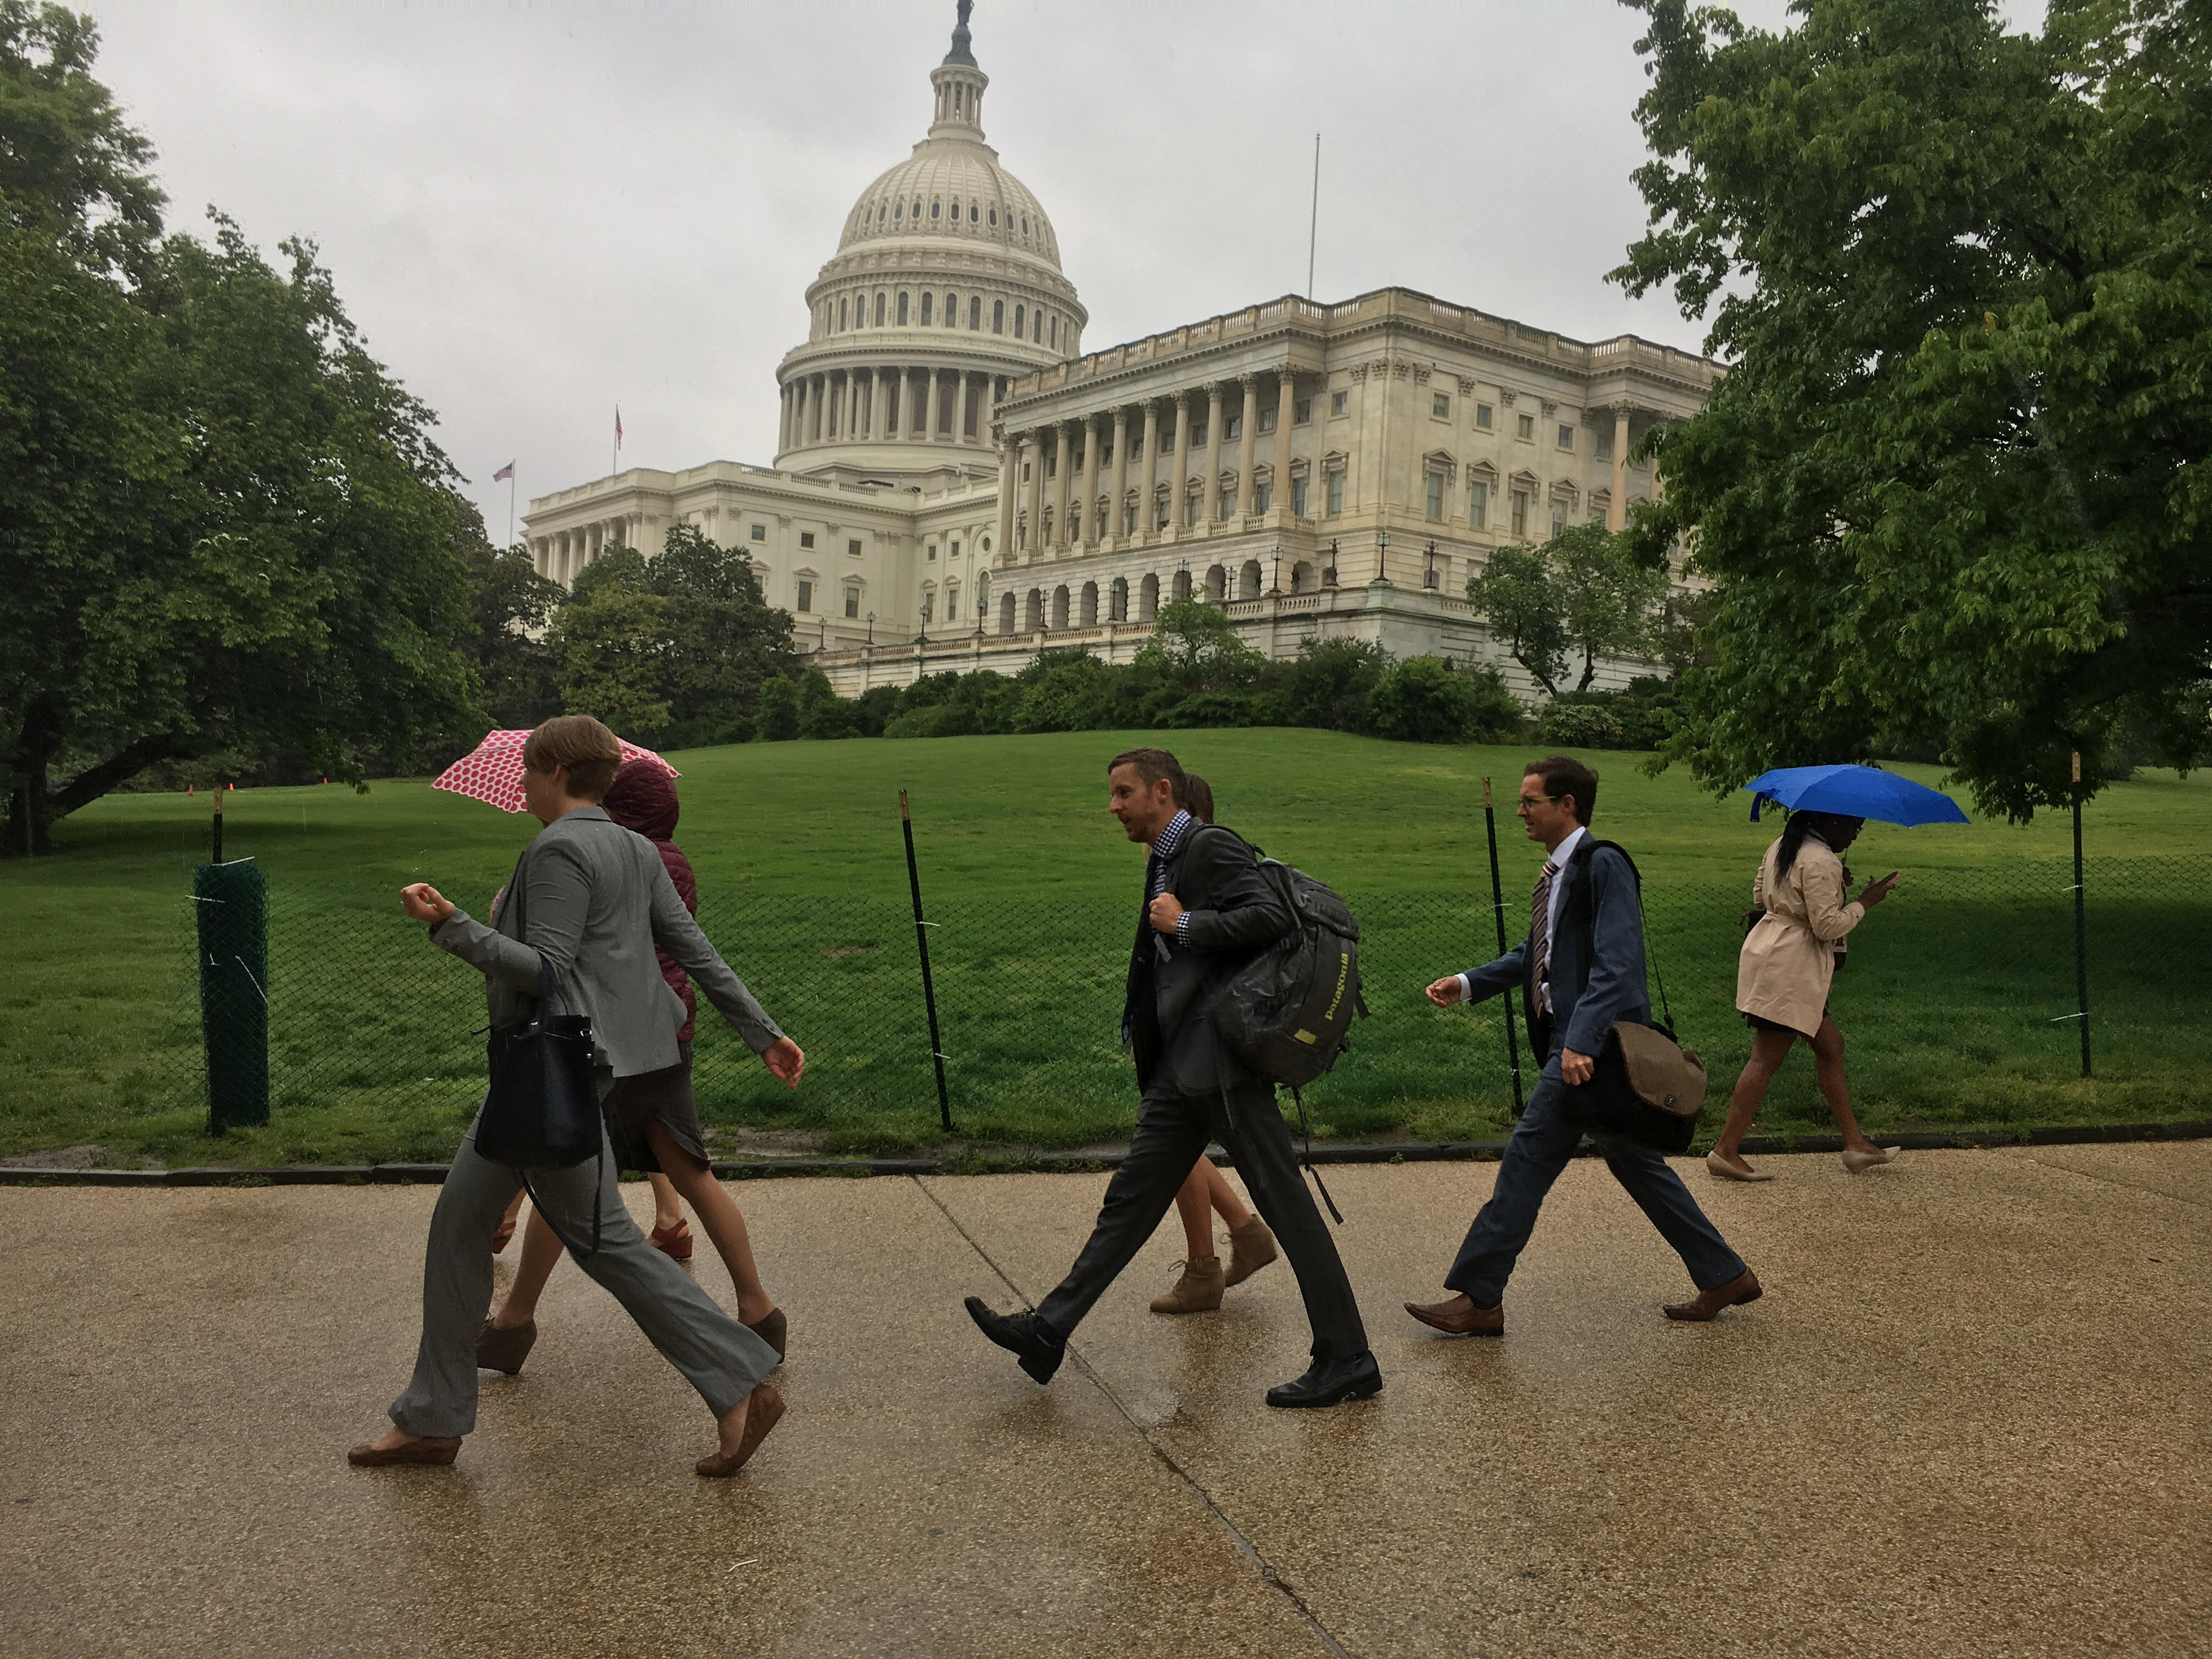 The delegation of Colorado climbers walks through the rain from the House to the Senate while lobbying Congress in Washington, DC, on May 11 as part of the Climb the Hill event organized by the Access Fund and American Alpine Club. [Photo] Derek Franz